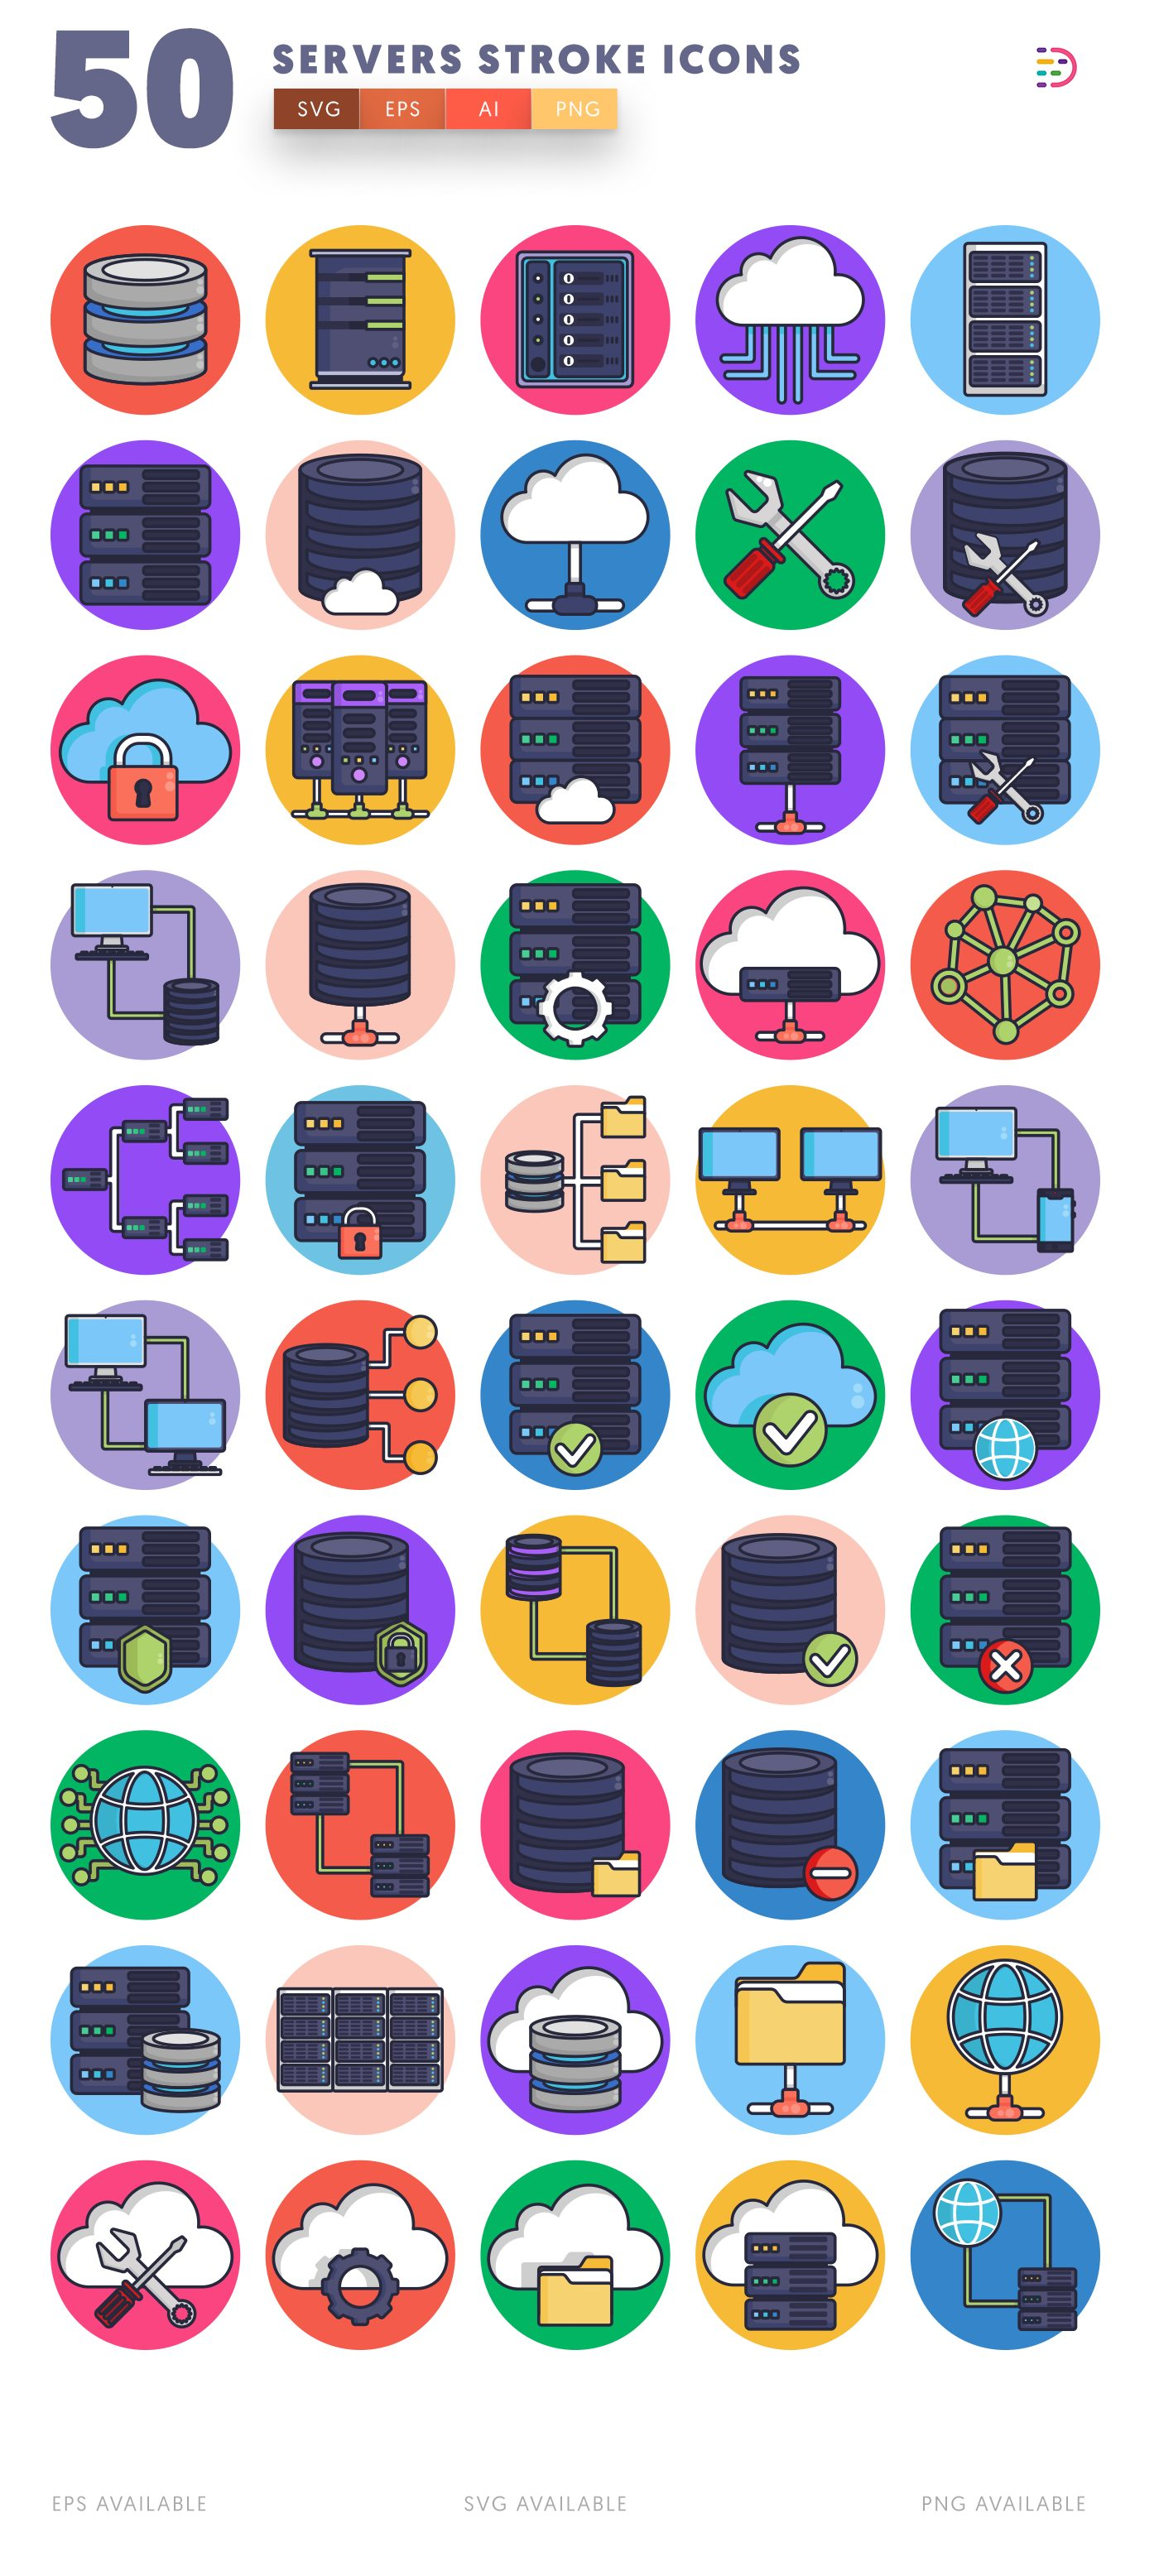 Servers Stroke icon pack